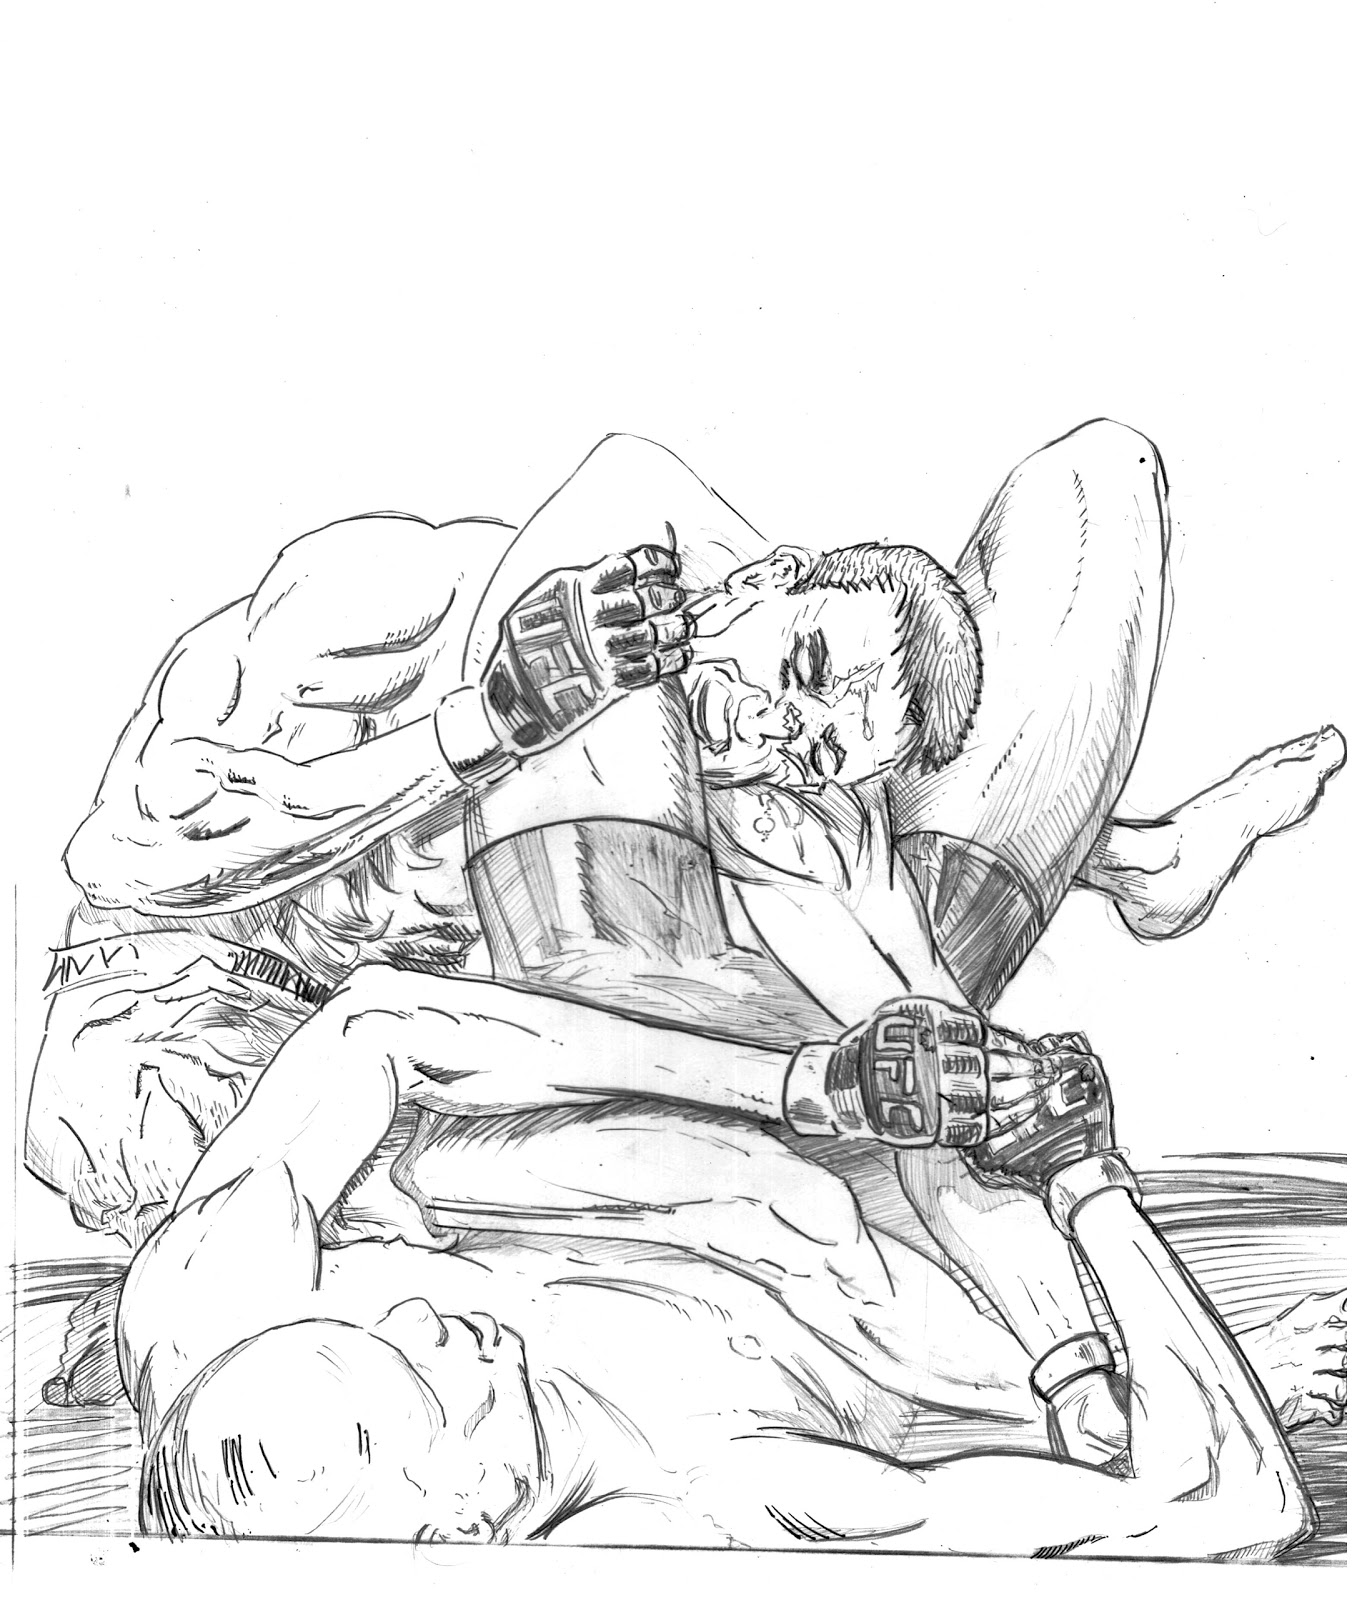 ufc coloring pages - photo#12